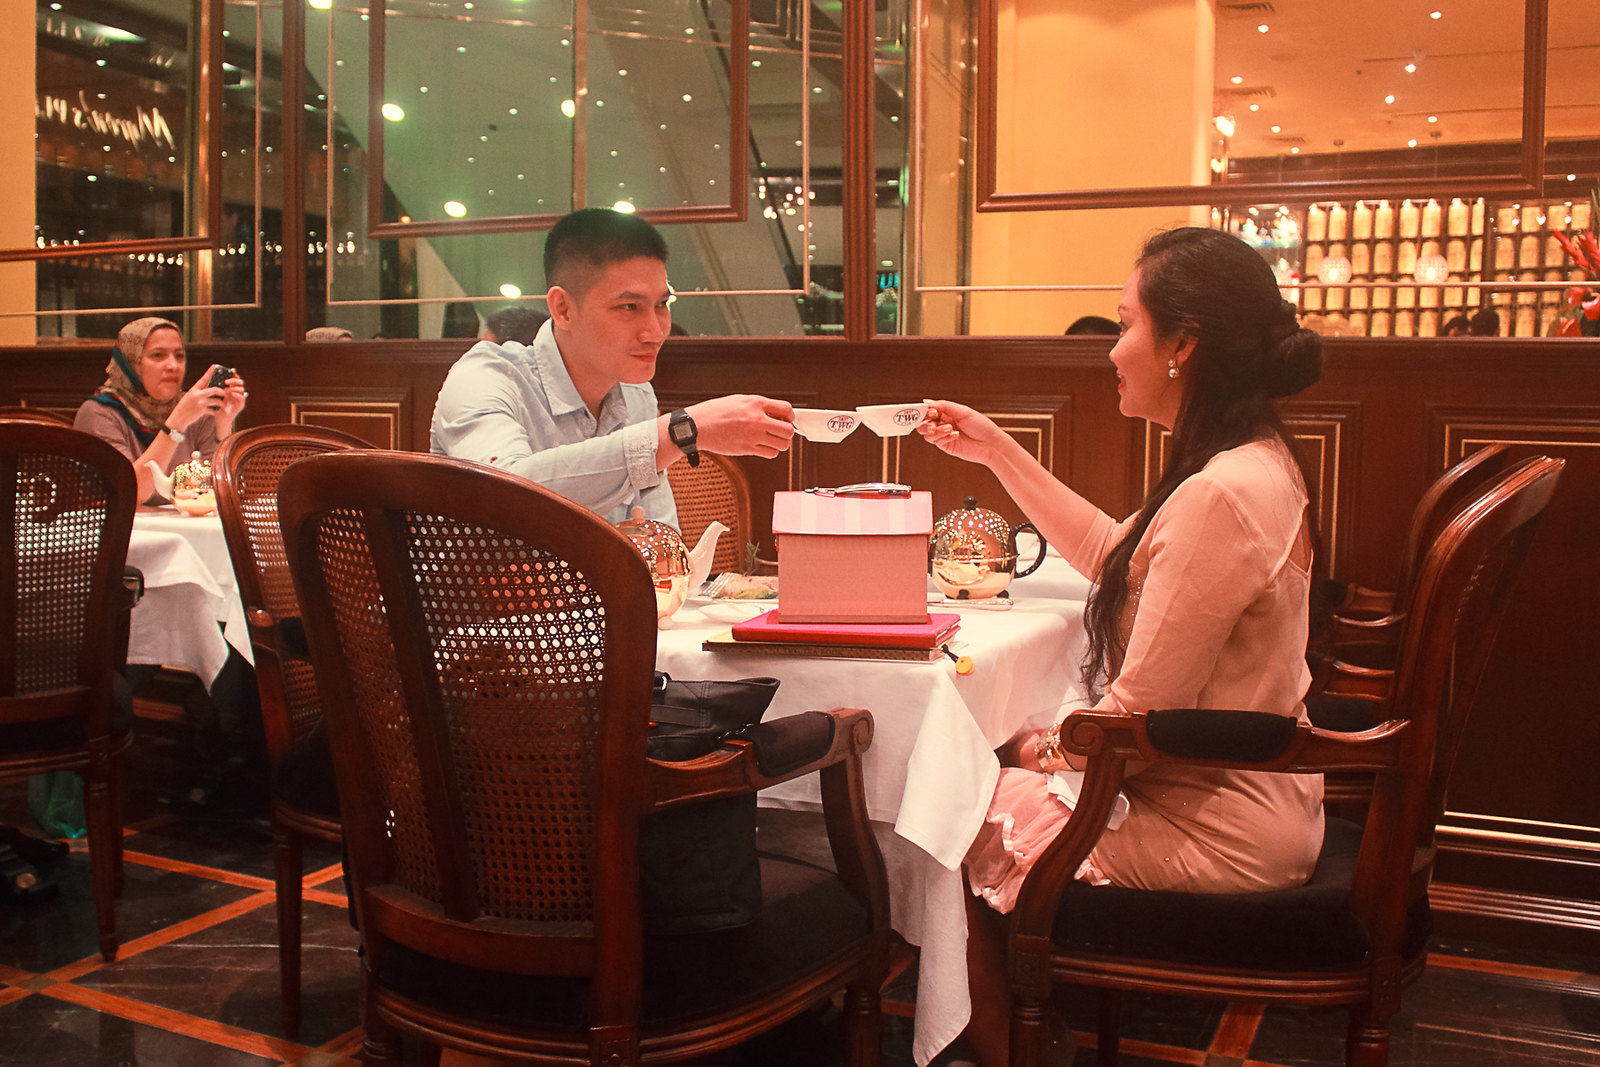 Toasting at TWG